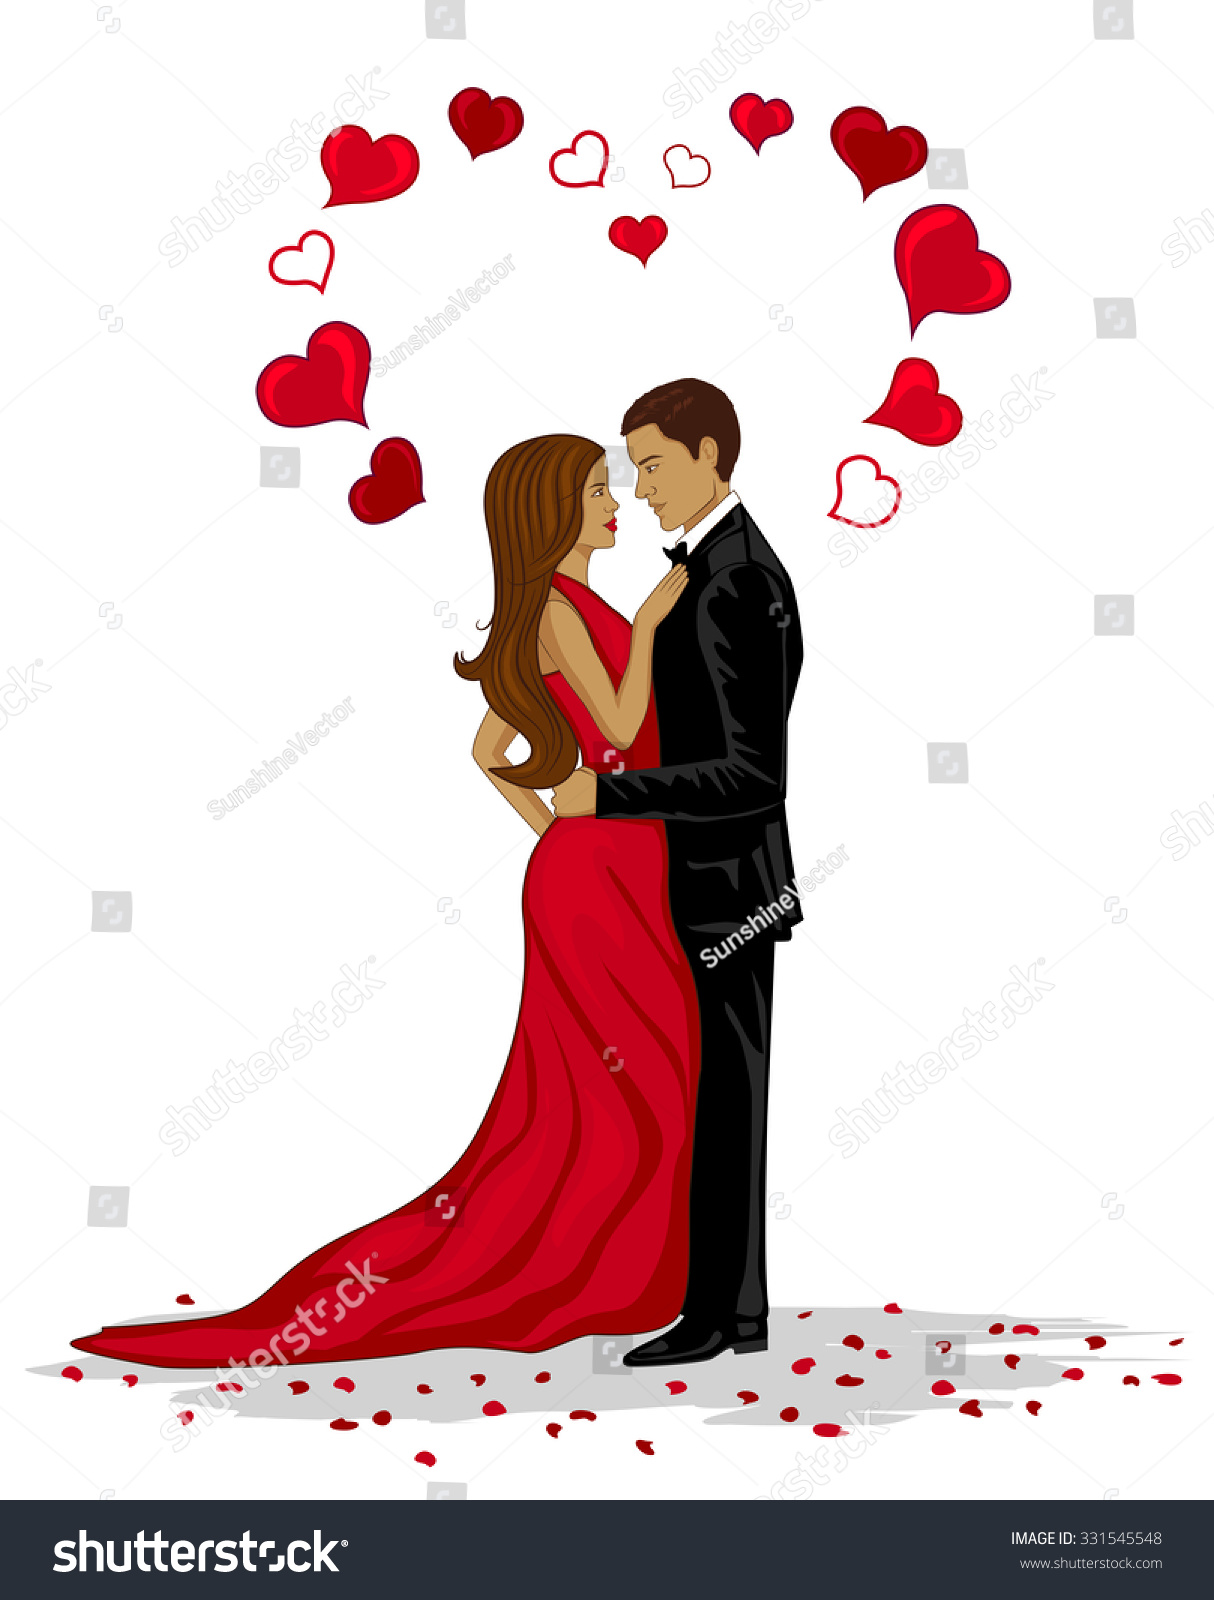 valentines day heart couple - photo #29